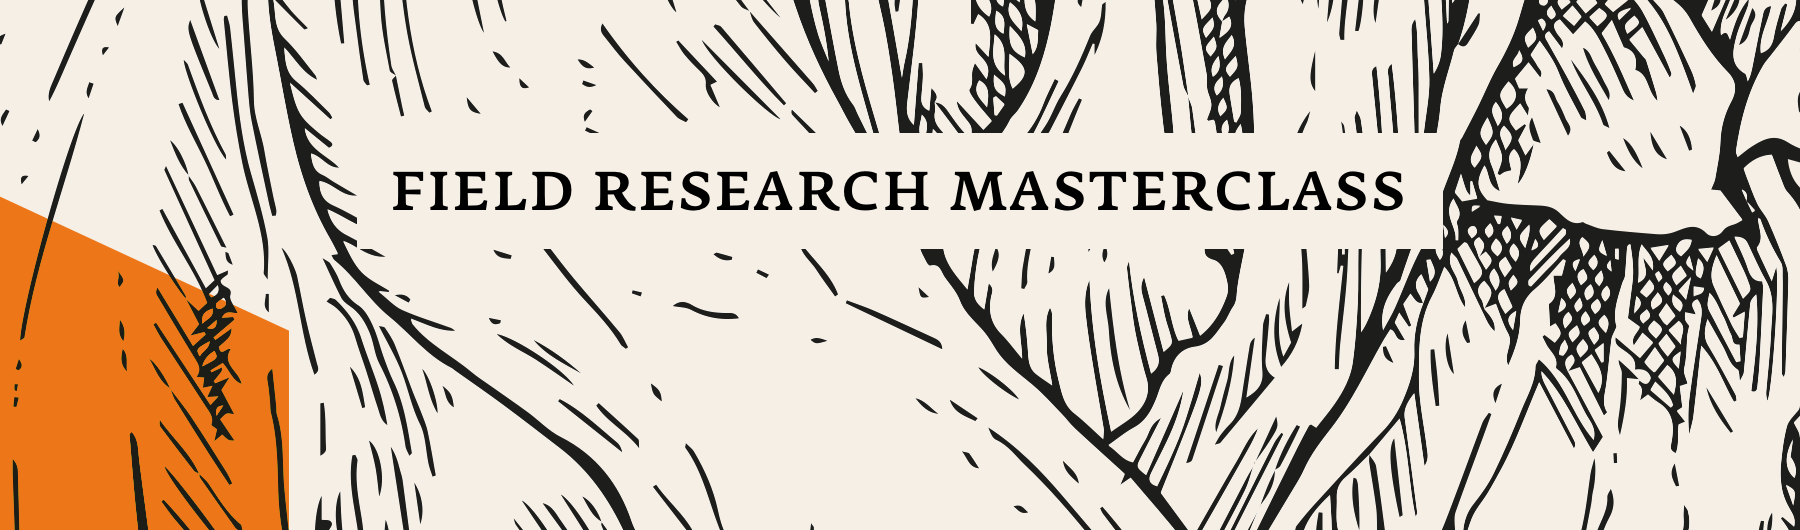 May 18, Field Research Masterclass, Amsterdam